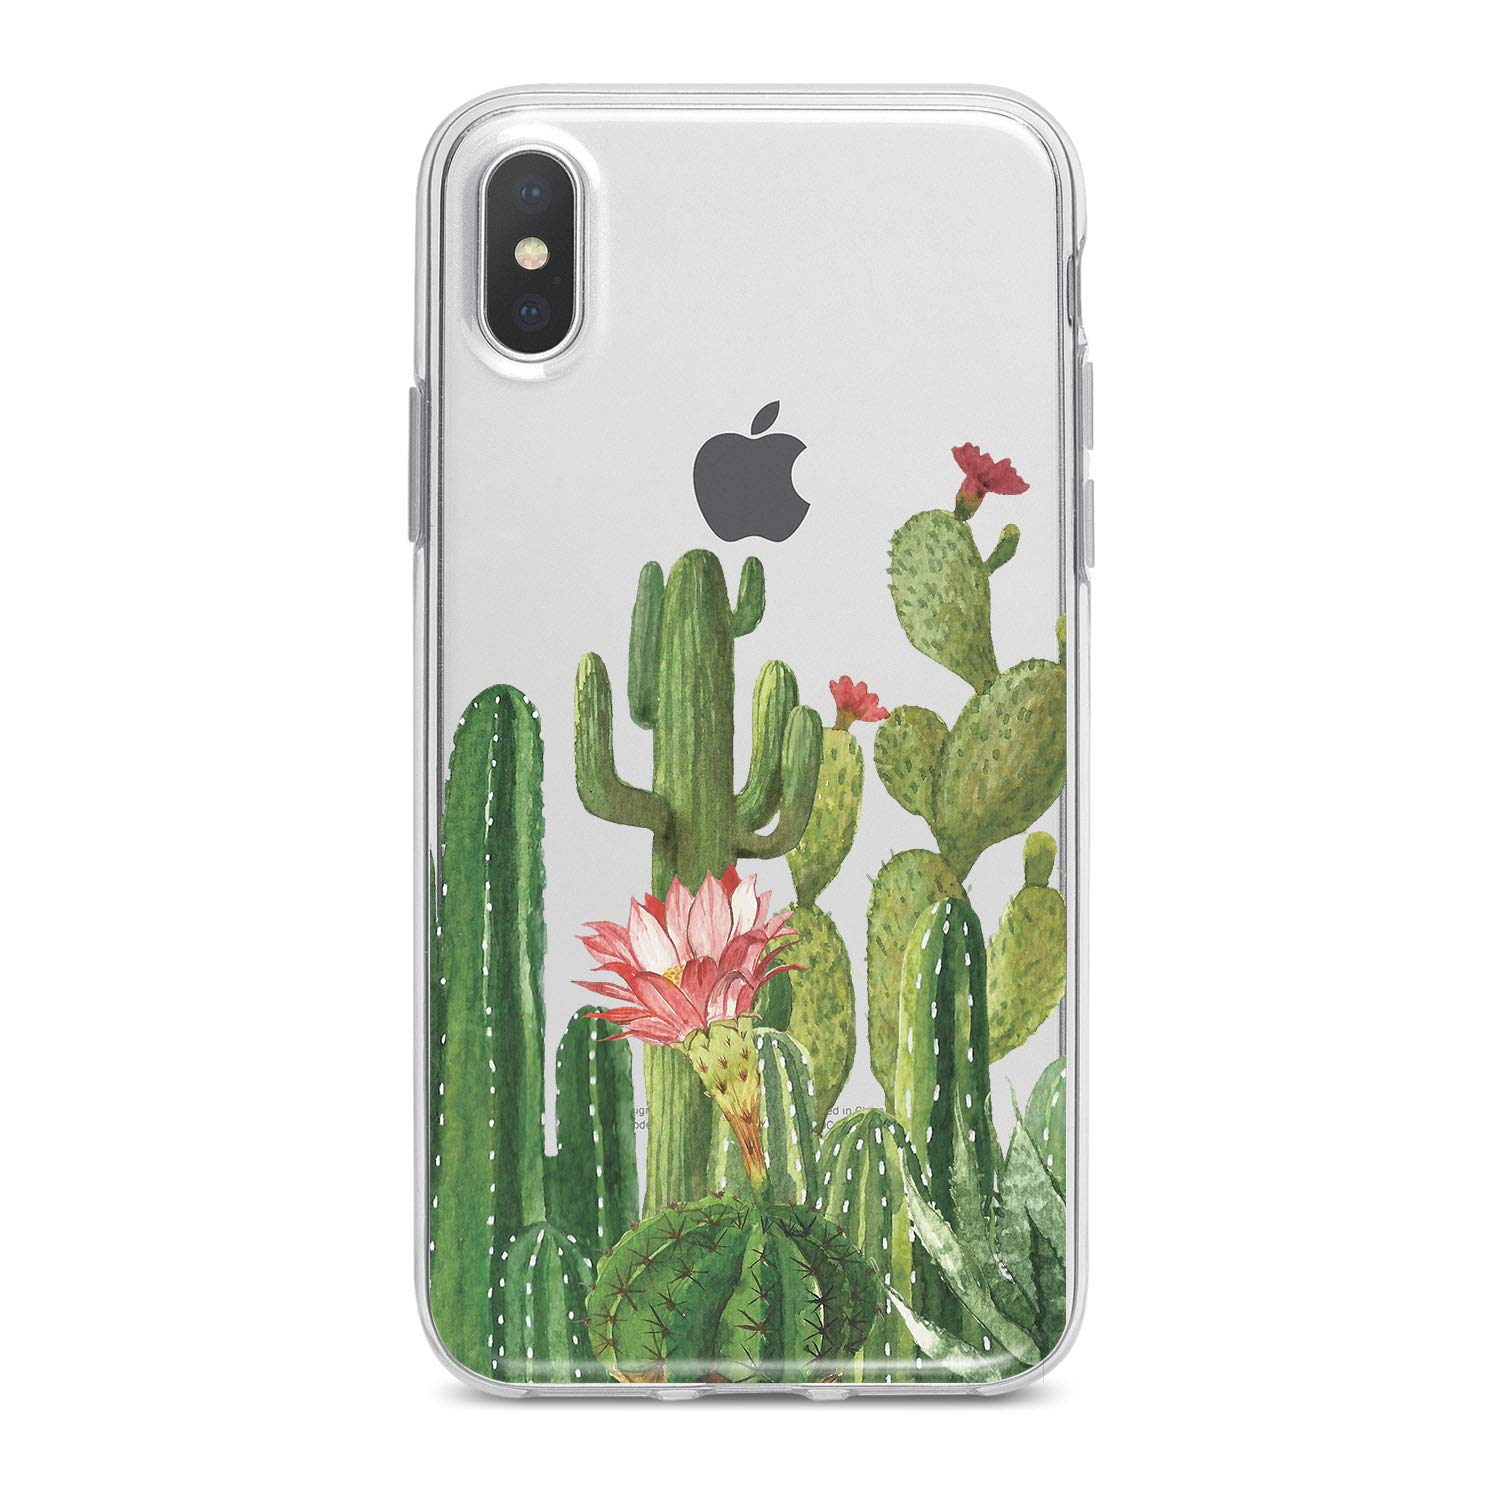 Lex Altern TPU iPhone Cases X 8 Plus 7 6s 6 SE 5s 5 Clear Cactus Apple Phone Green Cover Plants Print Floral Protective Flower Transparent Flexible Girls Teen Women Soft Silicone Lightweight Design